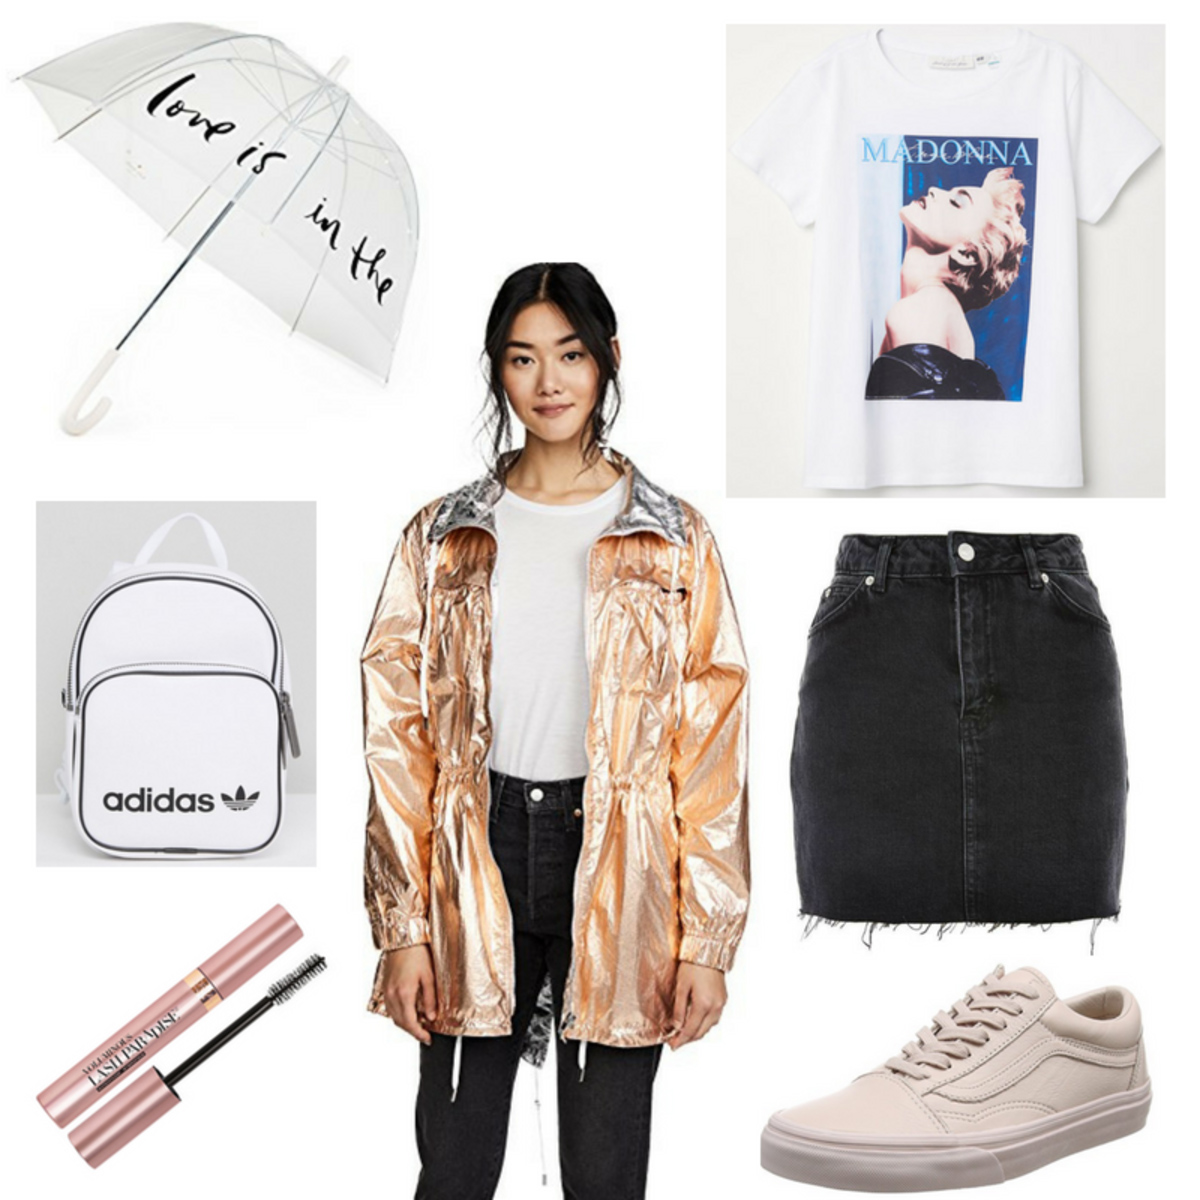 black-mini-skirt-denim-white-shoe-sneakers-white-graphic-tee-gold-yellow-jacket-parka-metallice-white-bag-pack-rain-spring-summer-weekend.jpg